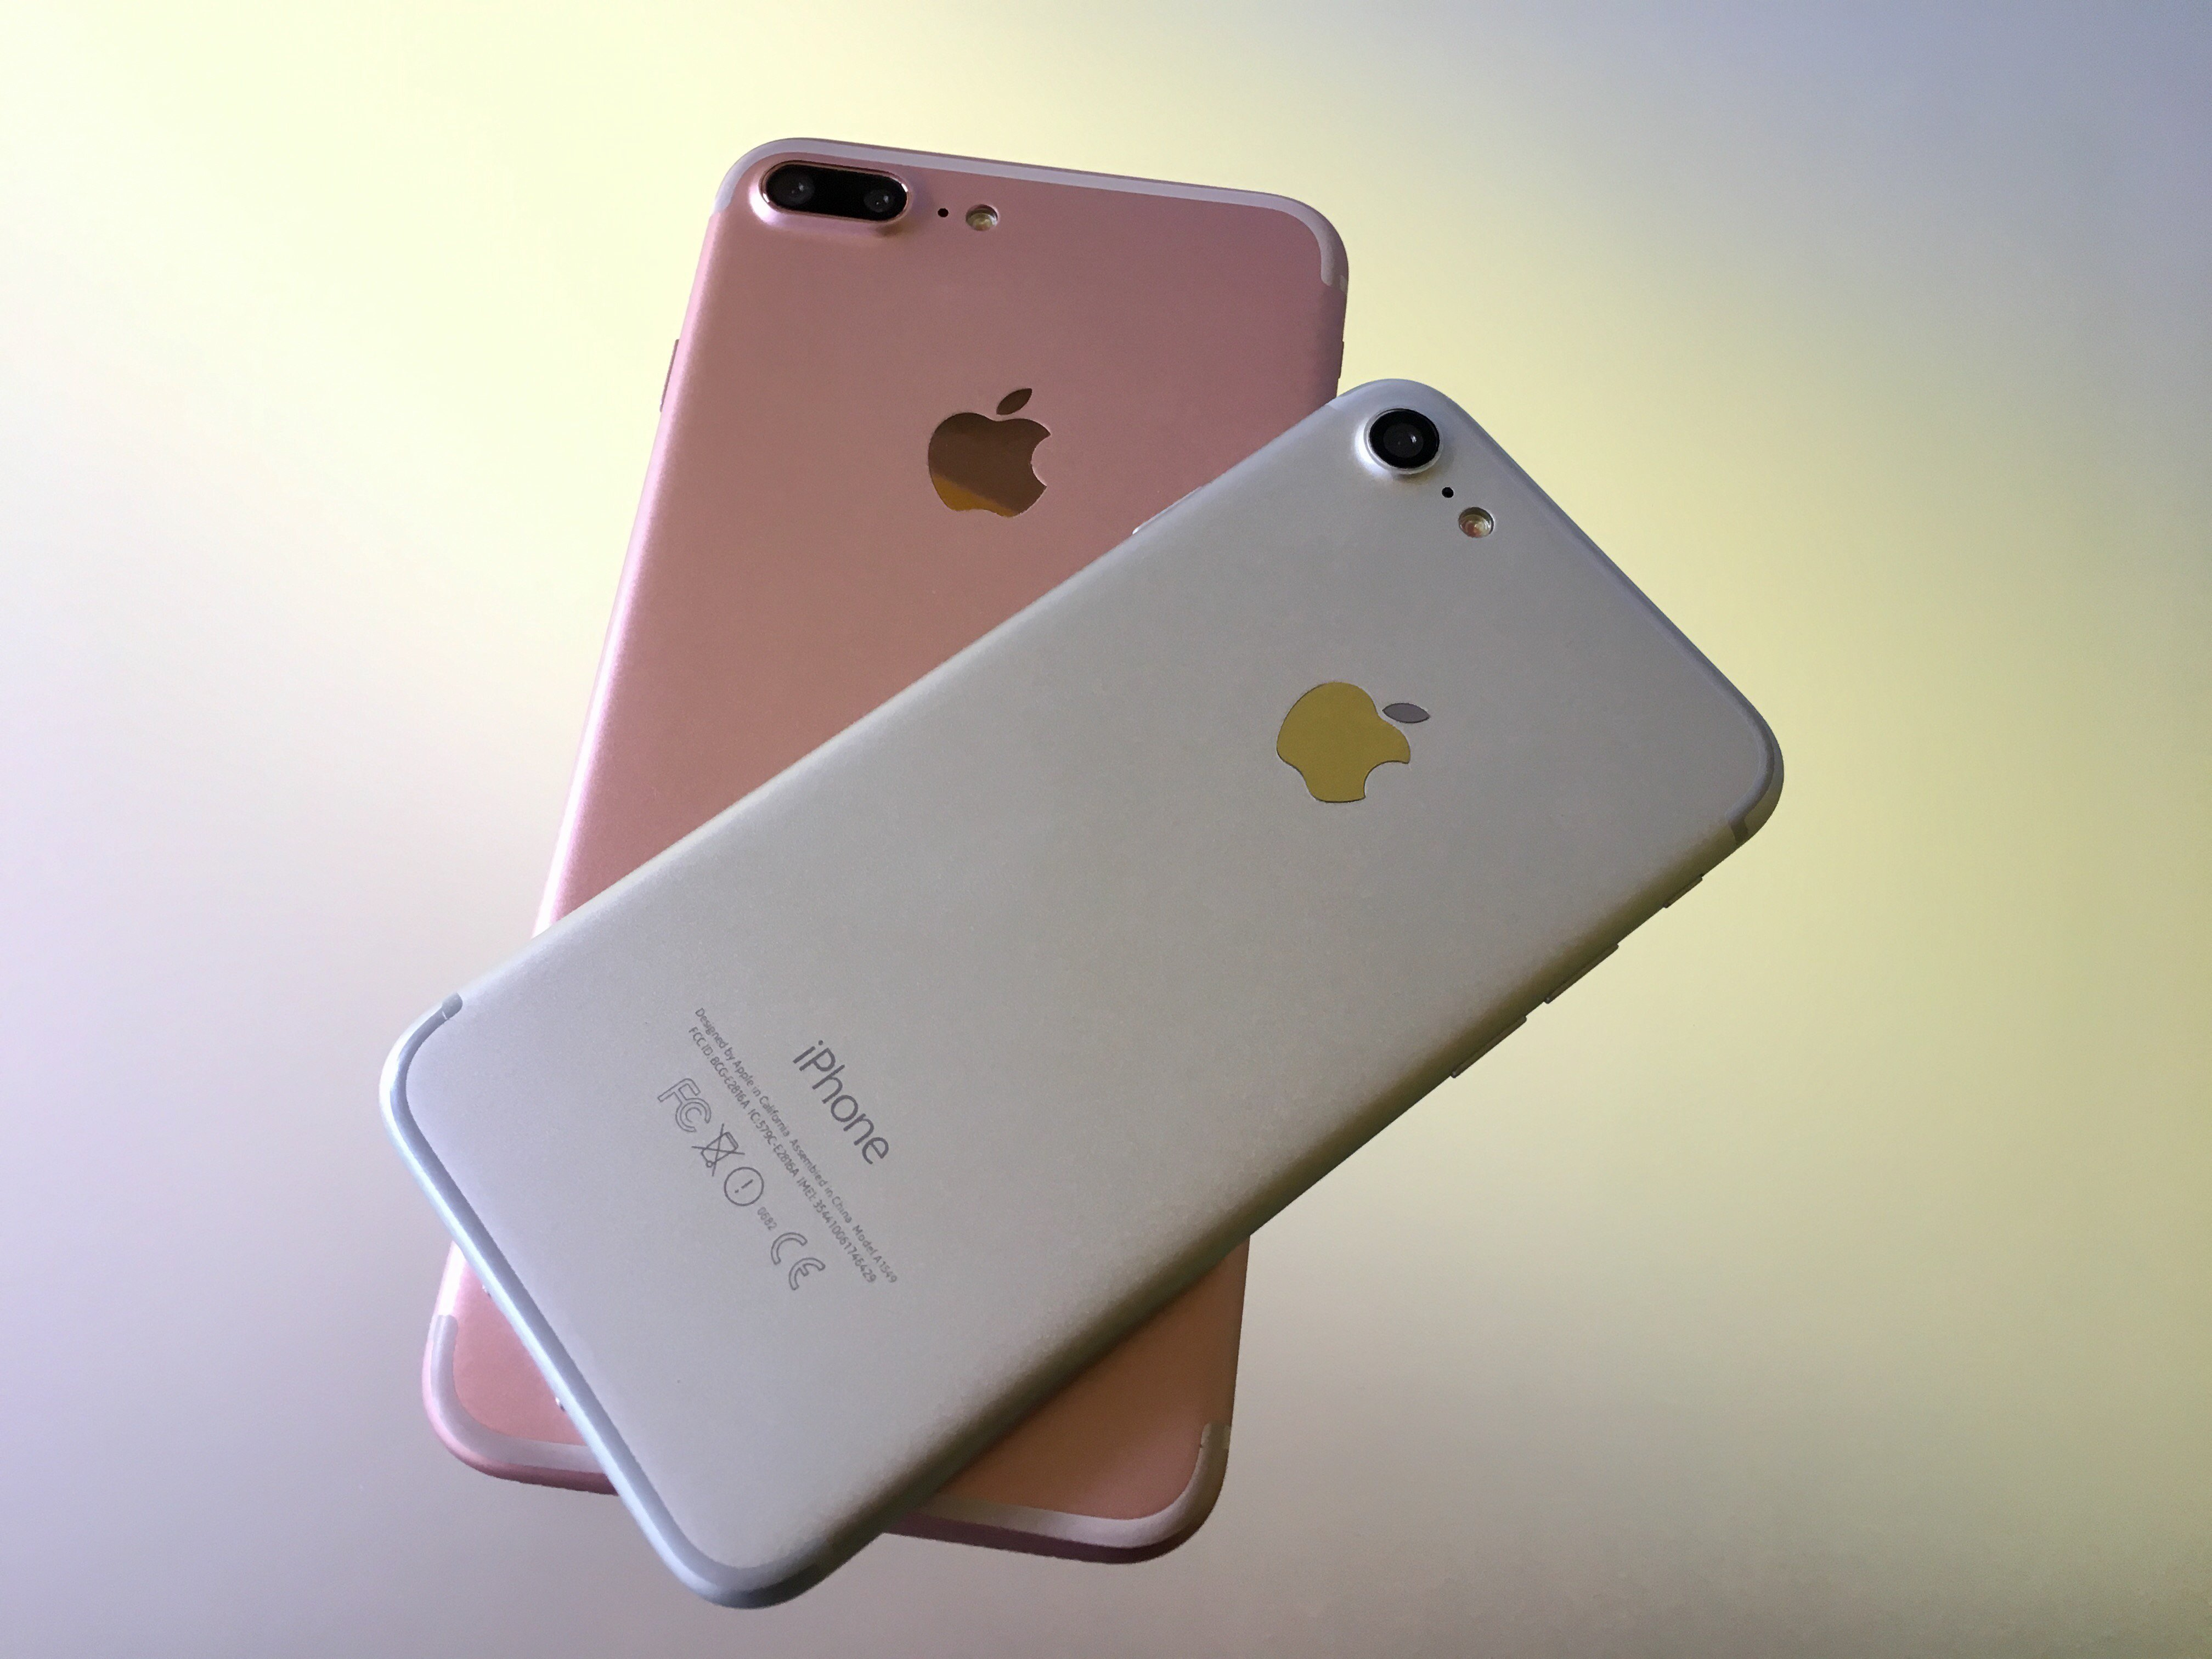 apple iphone 7 plus a1661 sim free model detailed review. Black Bedroom Furniture Sets. Home Design Ideas